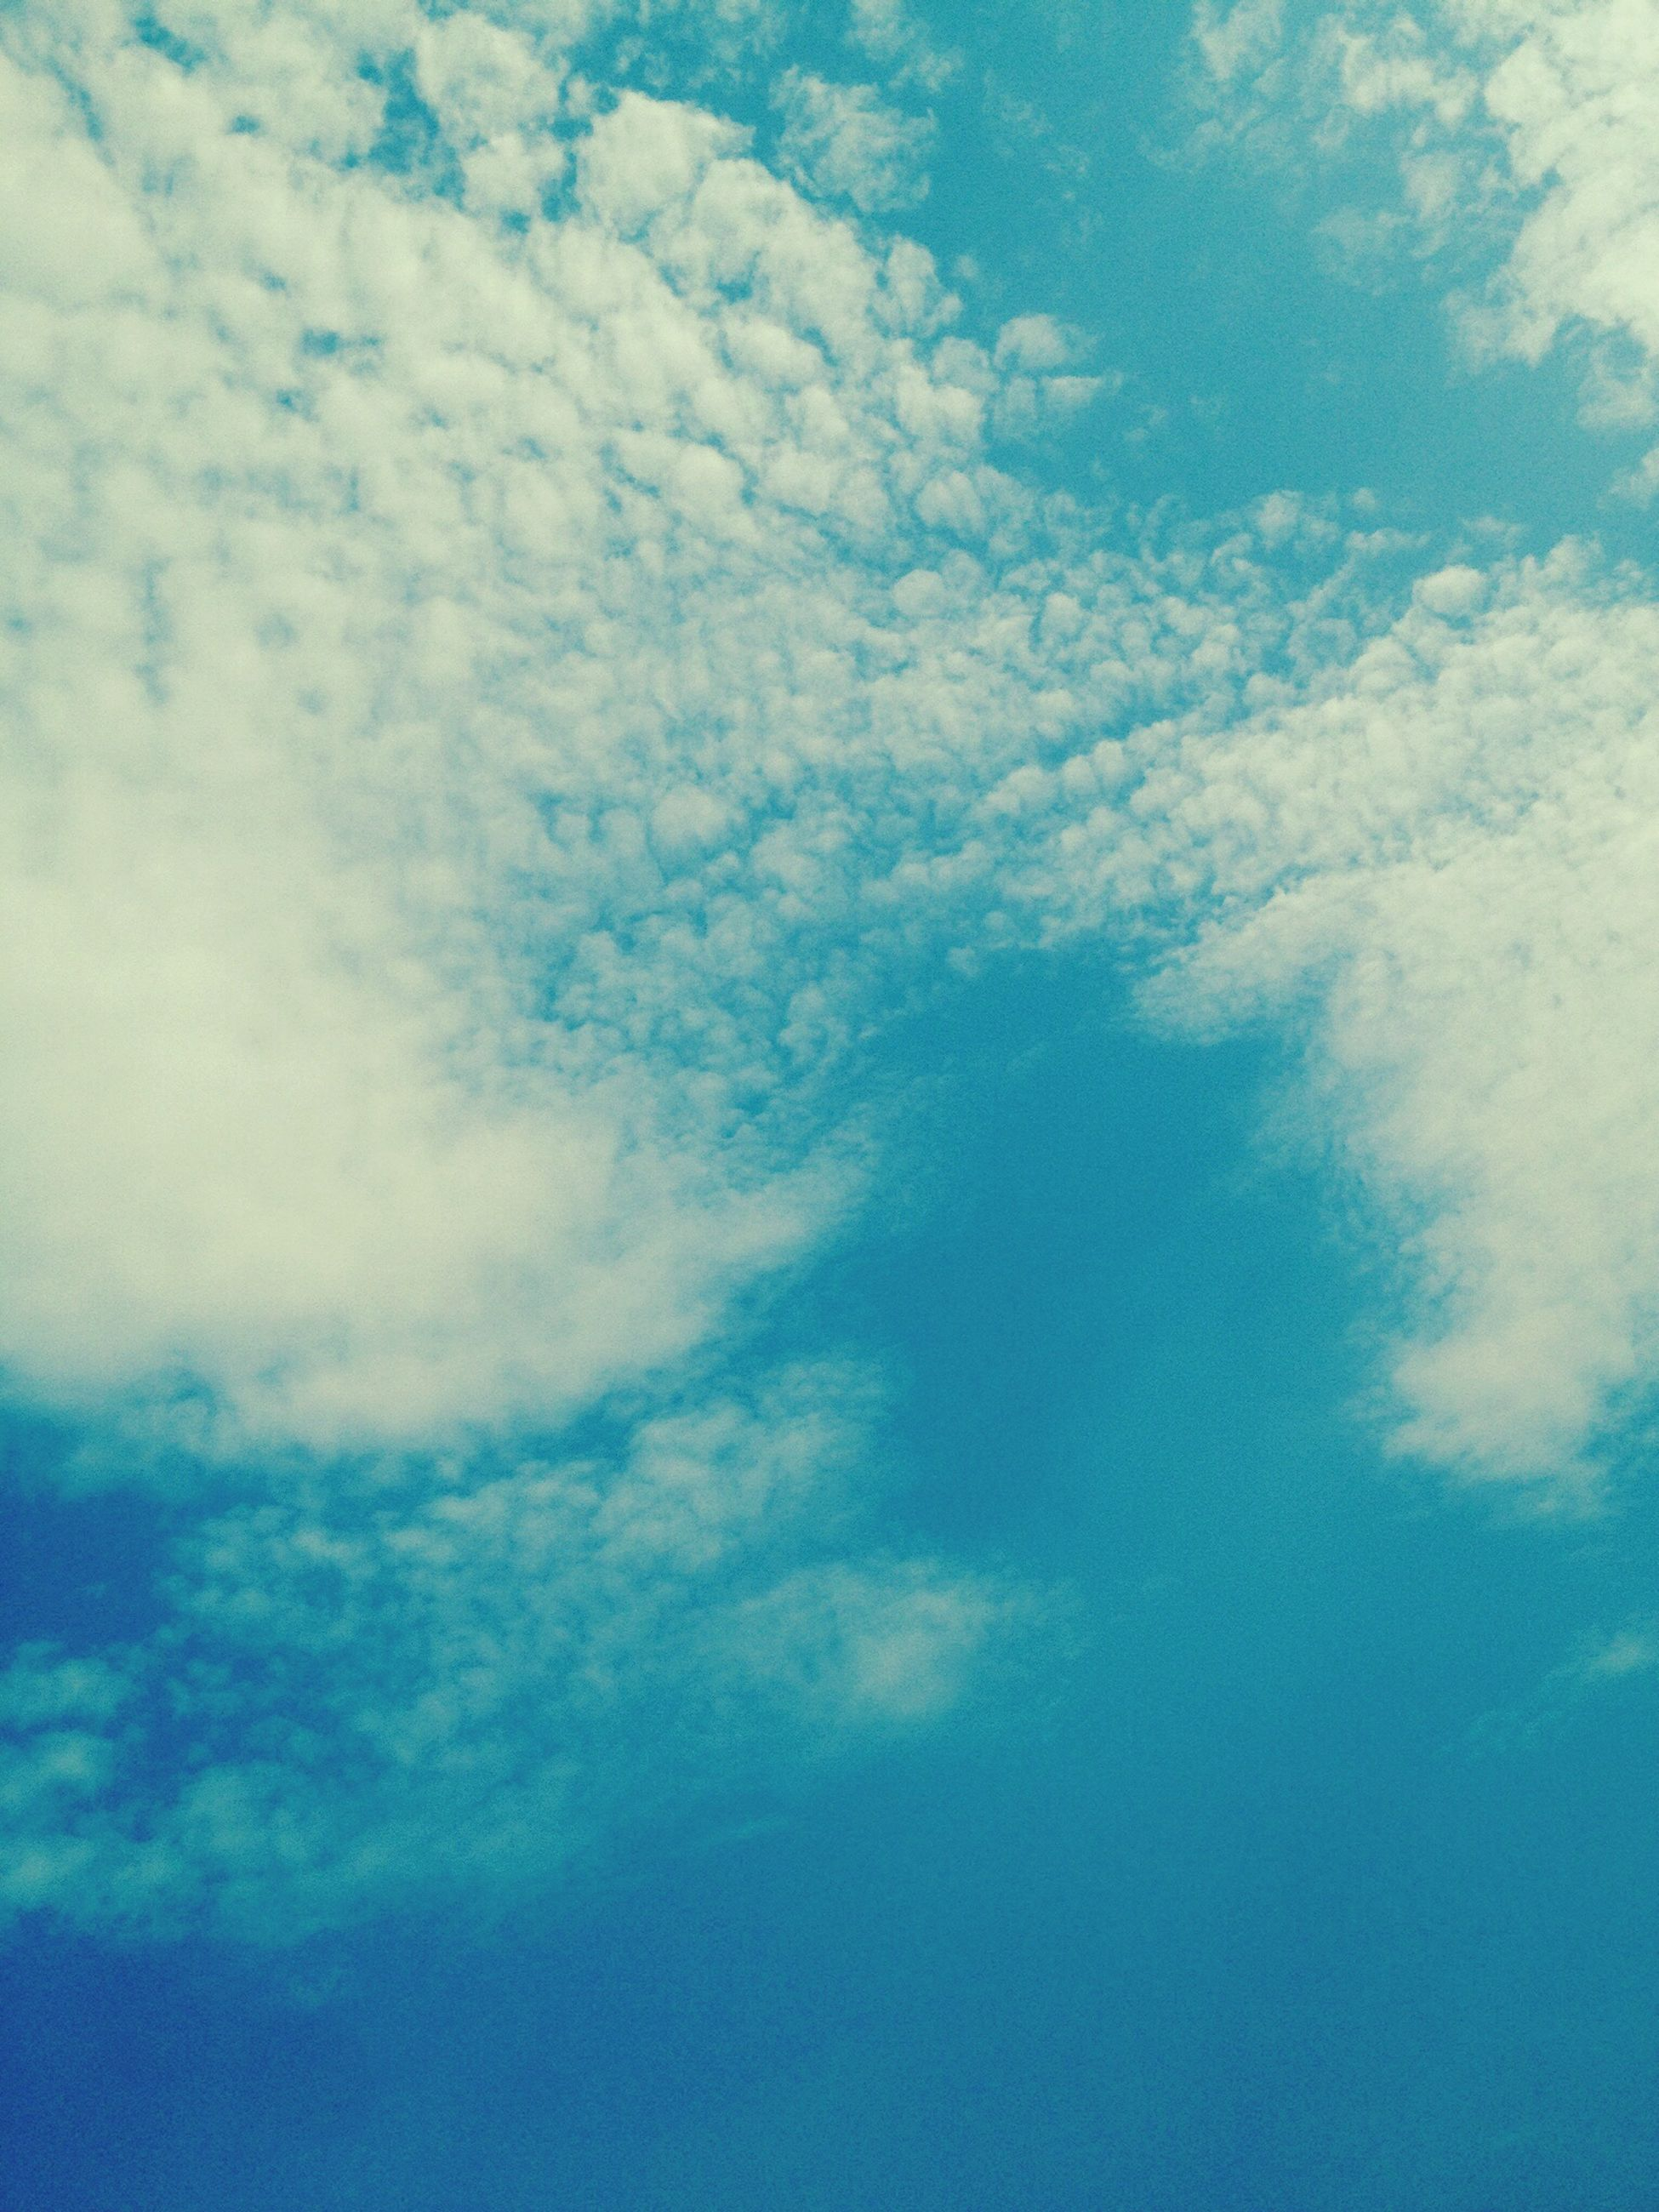 sky, low angle view, blue, cloud - sky, beauty in nature, tranquility, cloudy, scenics, nature, sky only, tranquil scene, backgrounds, cloud, cloudscape, full frame, idyllic, outdoors, day, no people, white color